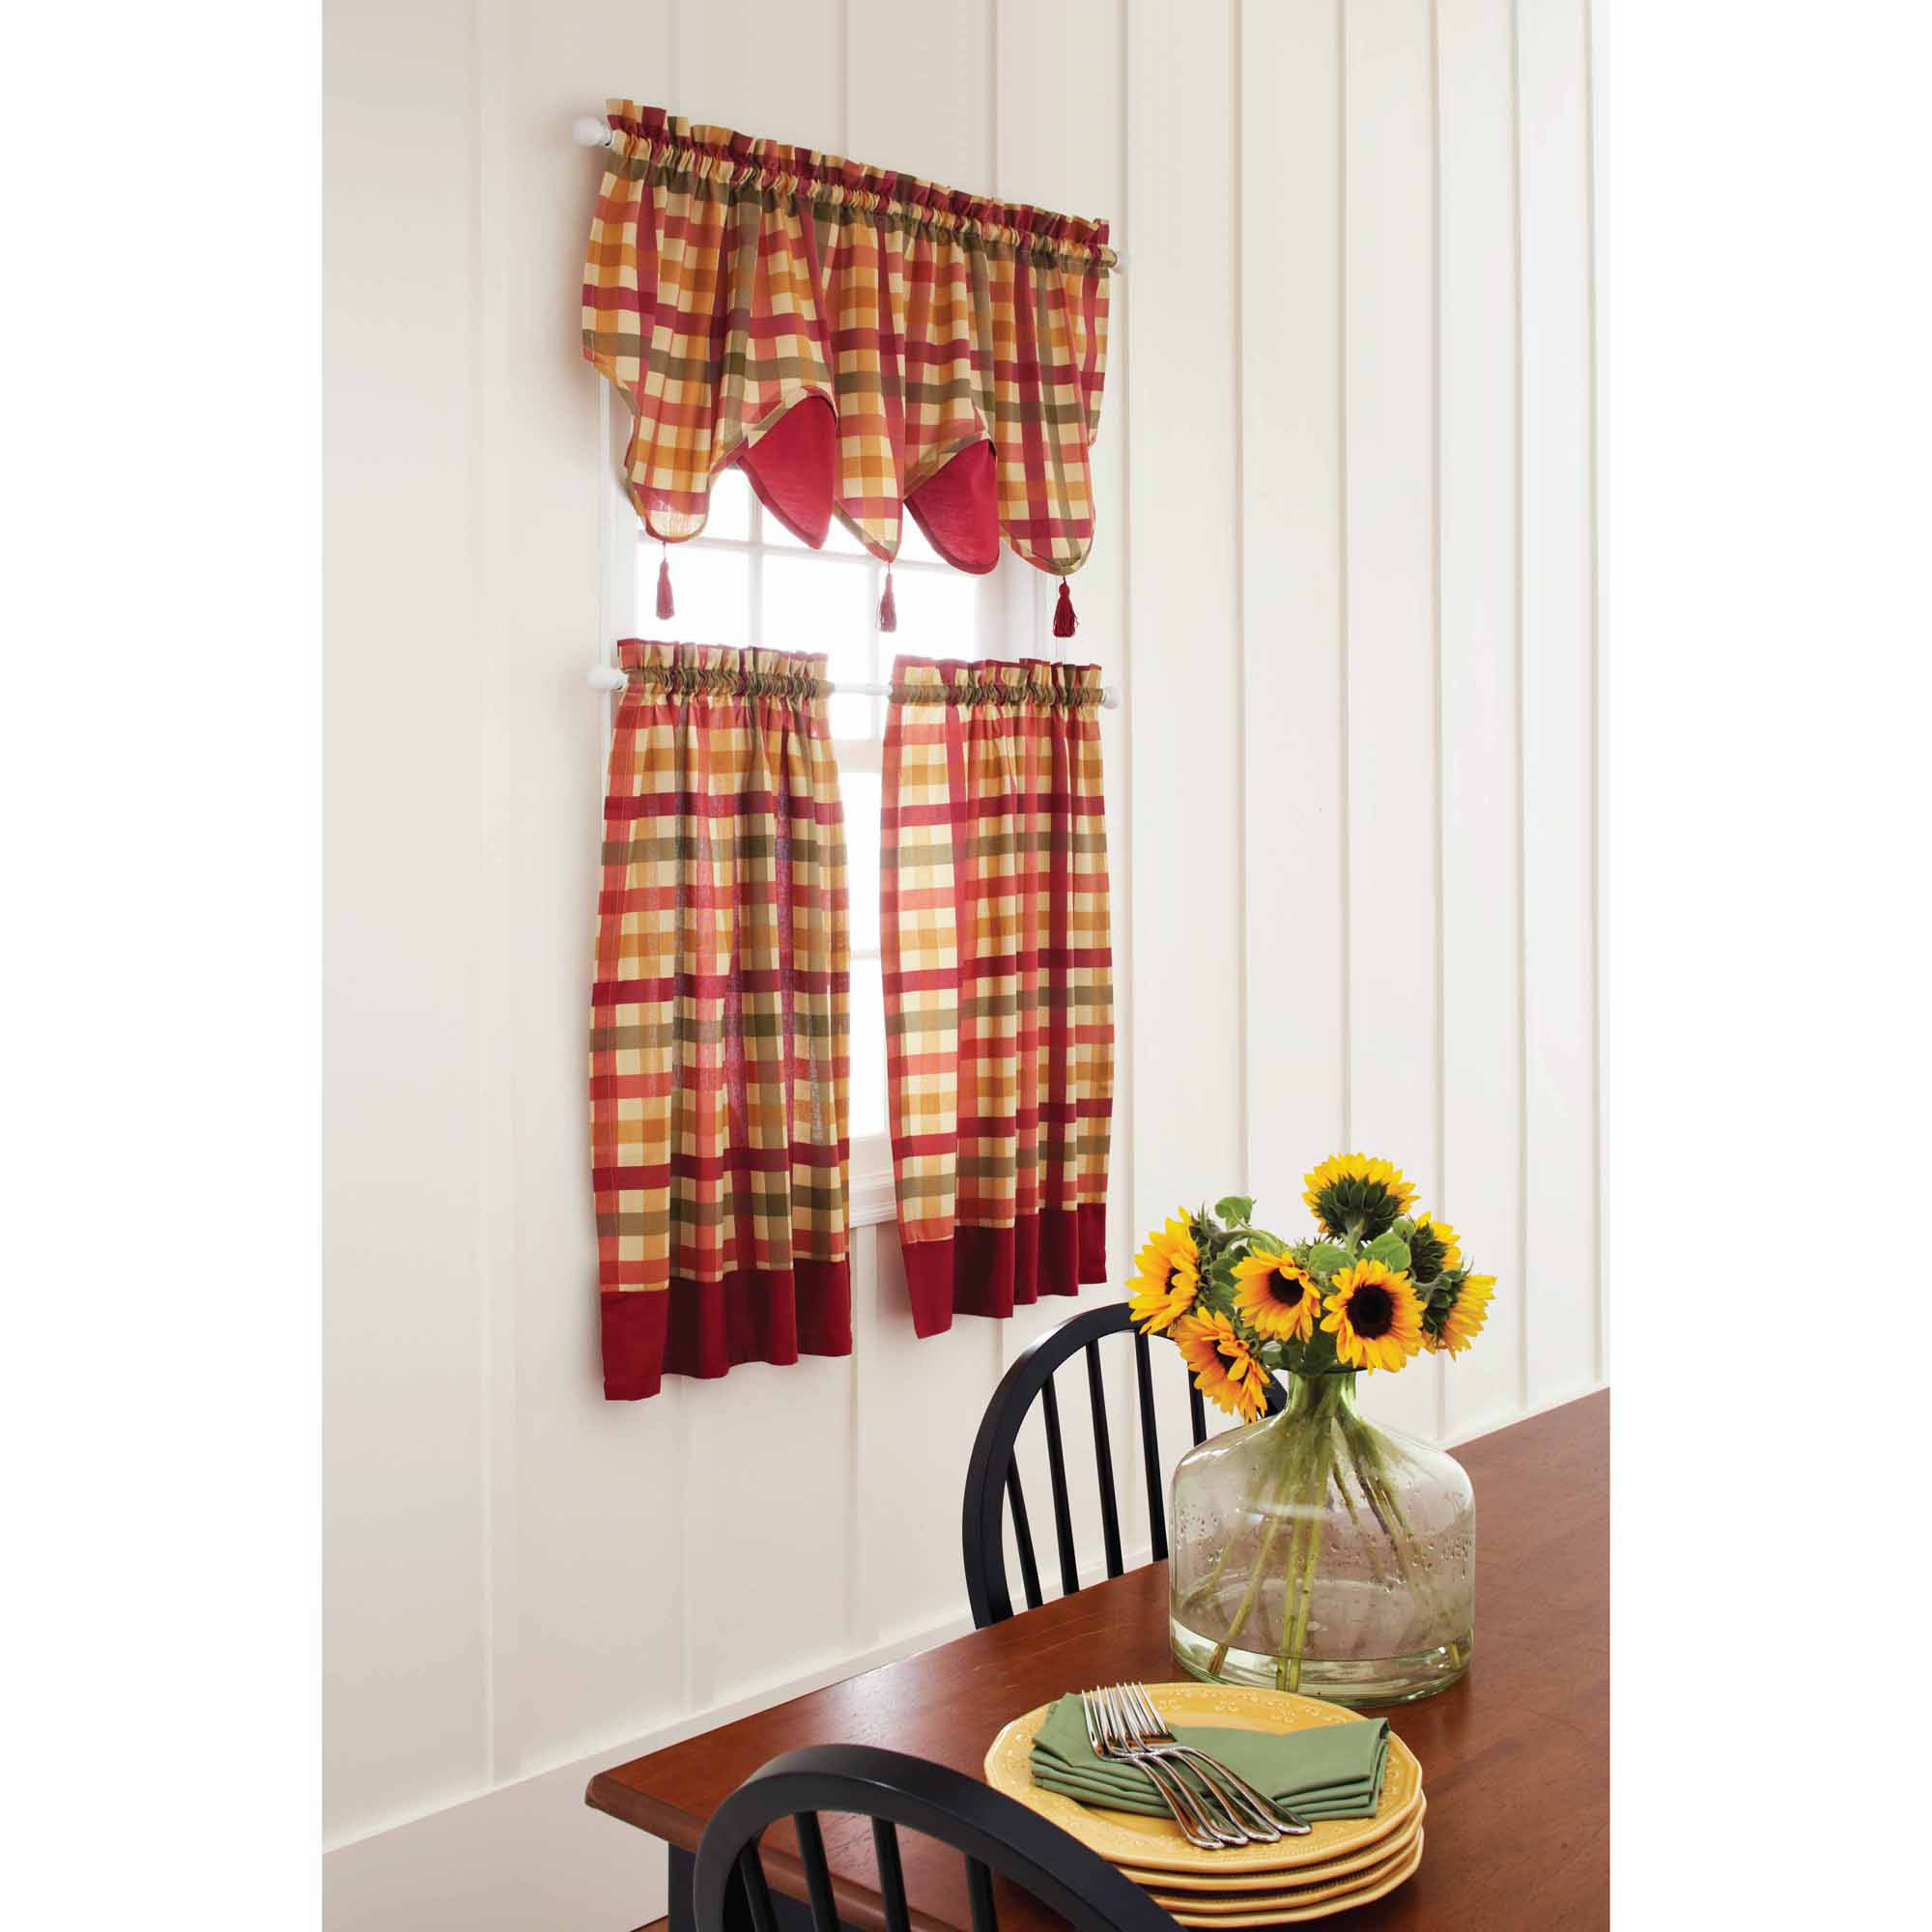 Yellow Kitchen Curtain Sets – Martinique Pertaining To Bermuda Ruffle Kitchen Curtain Tier Sets (View 15 of 20)